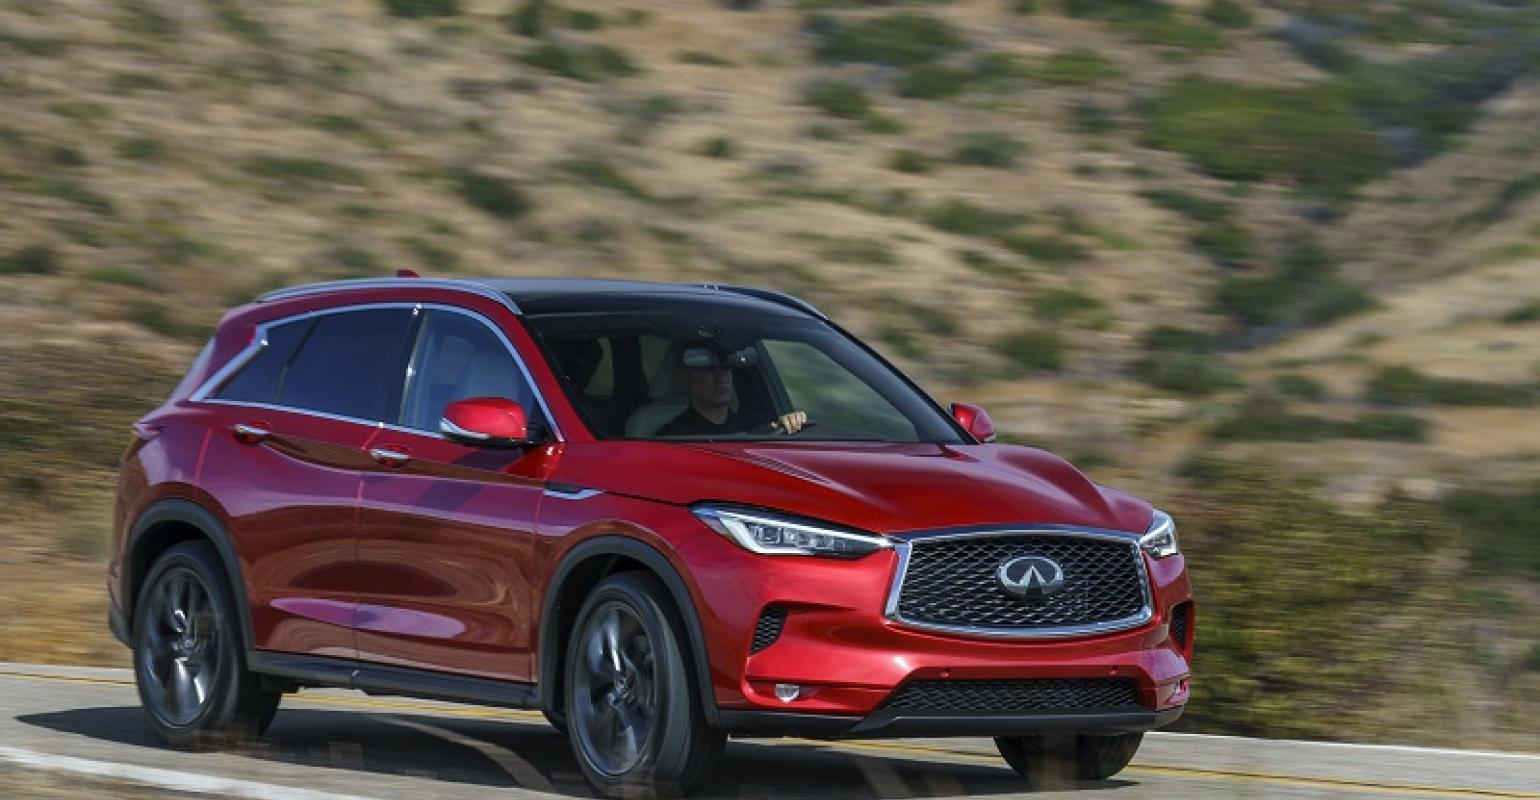 Infiniti | Variable Compression Turbo Could Pair With